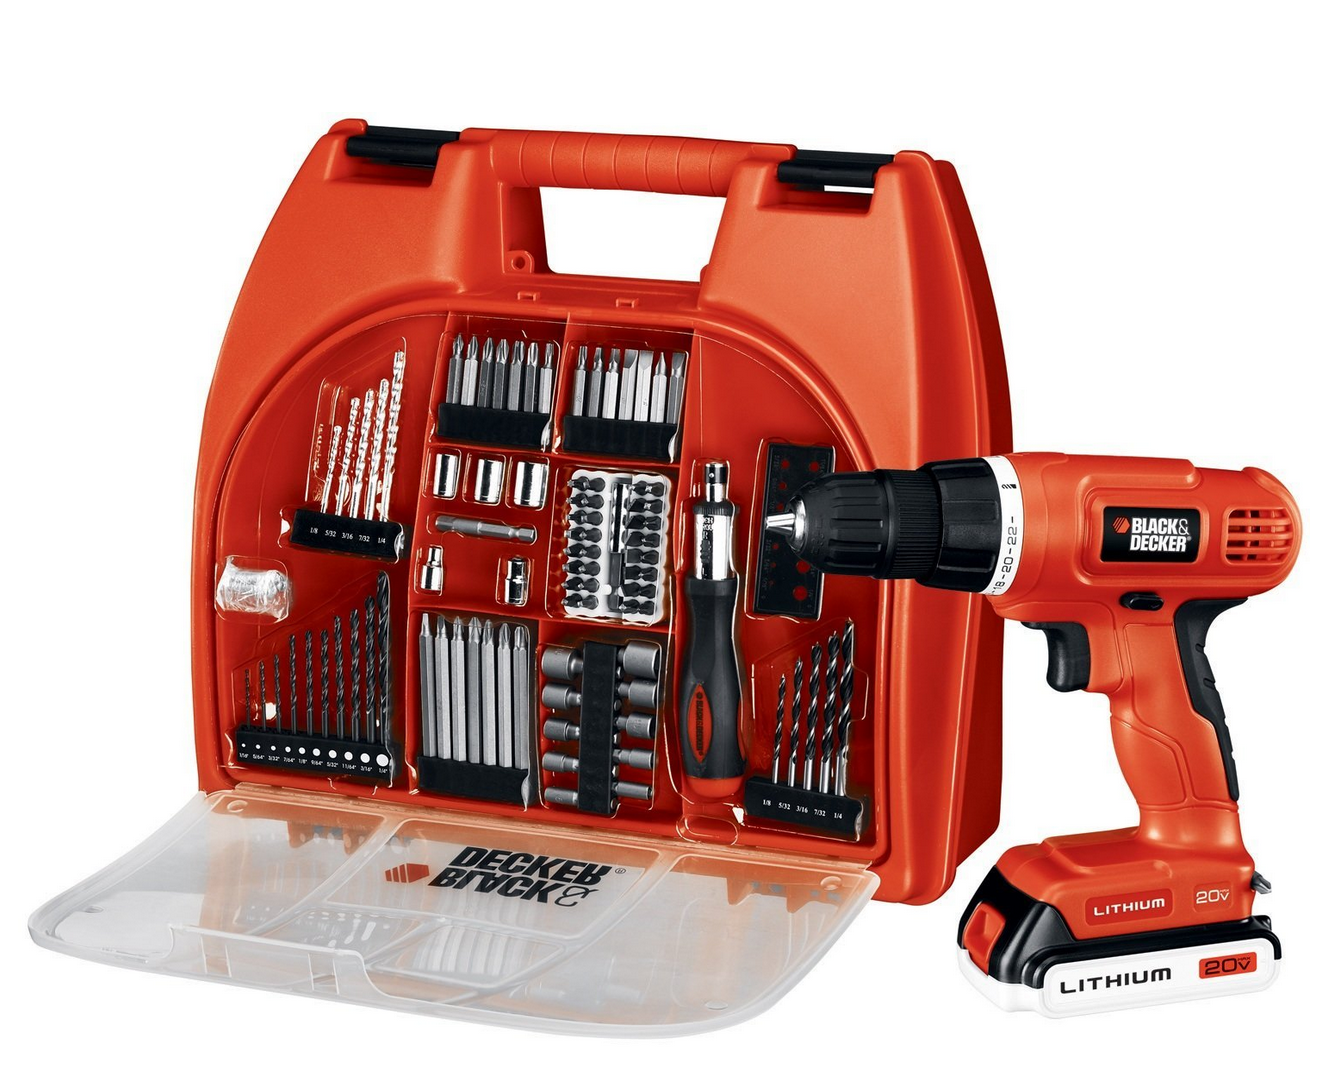 HOT! Black & Decker 20-Volt MAX Lithium-Ion Drill Kit With 100 Accessories Only $62.99 (Reg. $139!) + FREE Shipping!